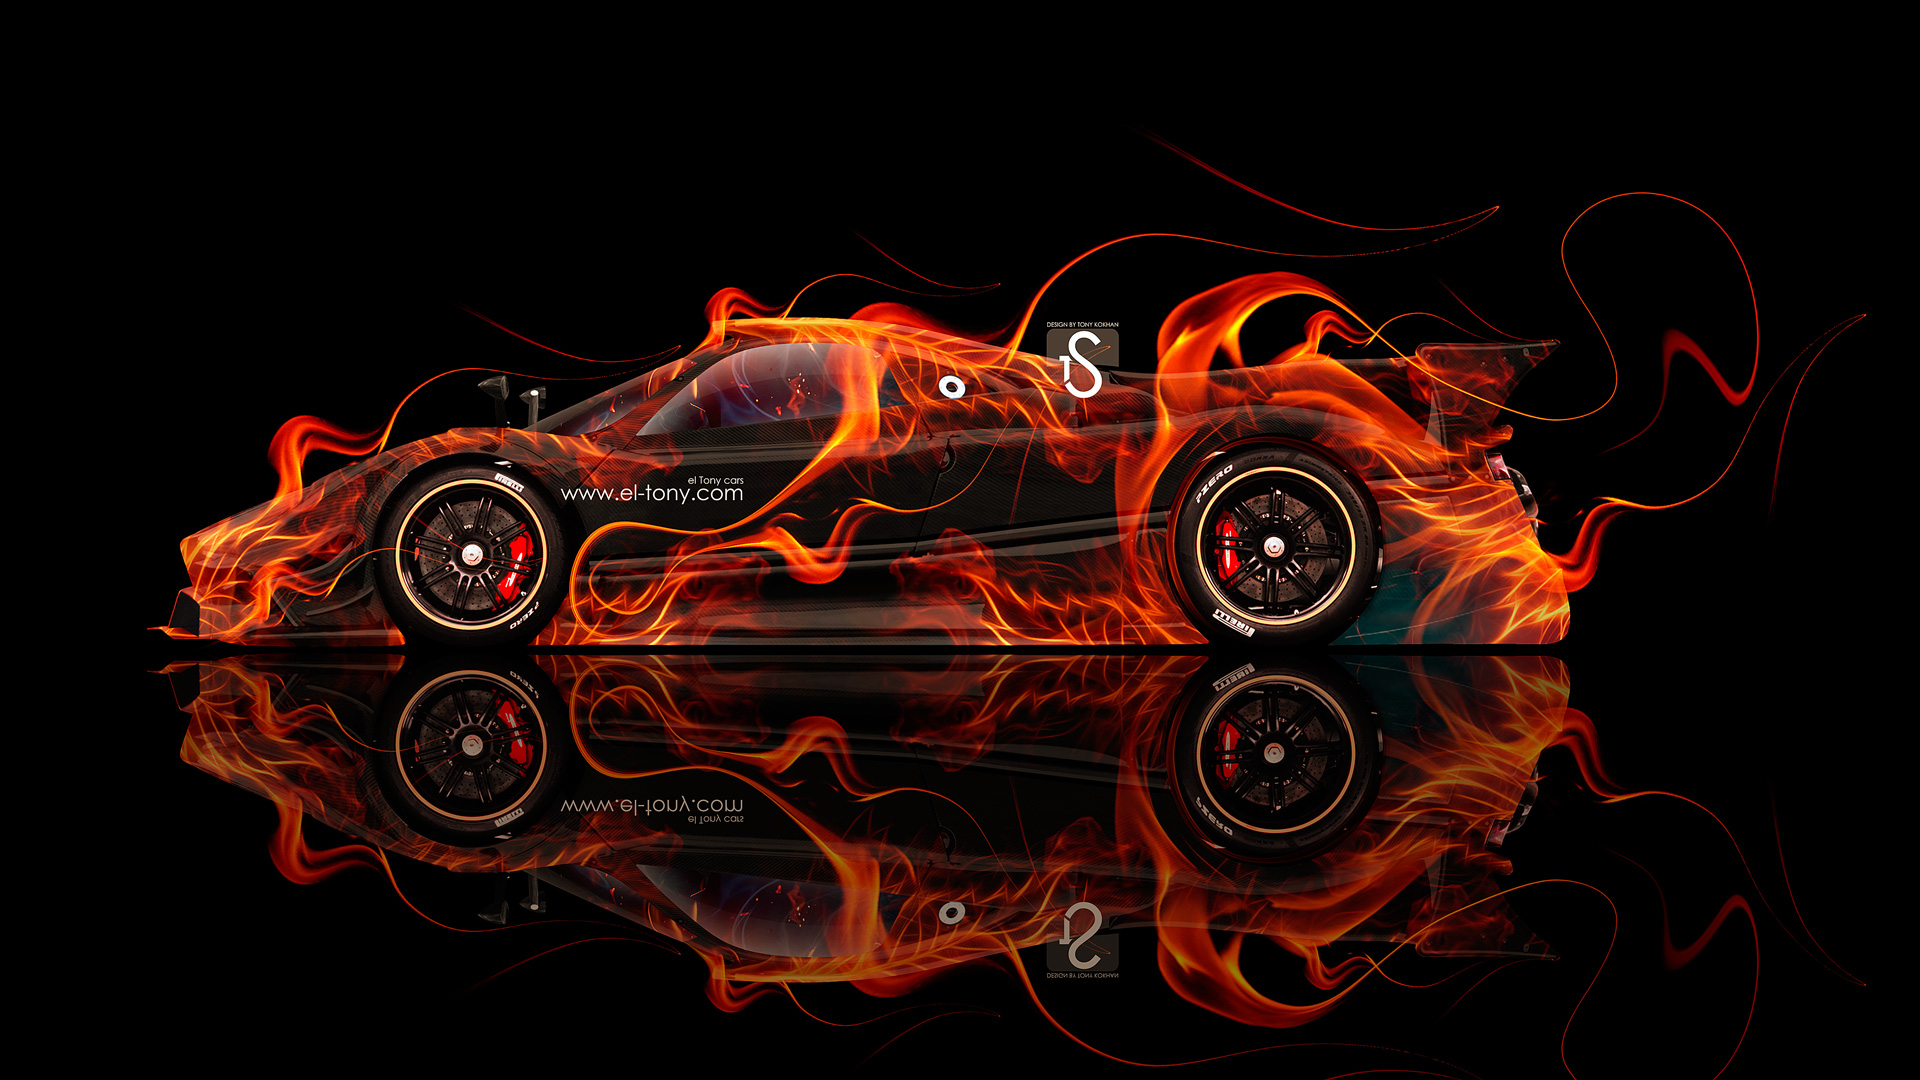 Exceptionnel Pagani Zonda Revolucion Fire Abstract Car 2014 HD